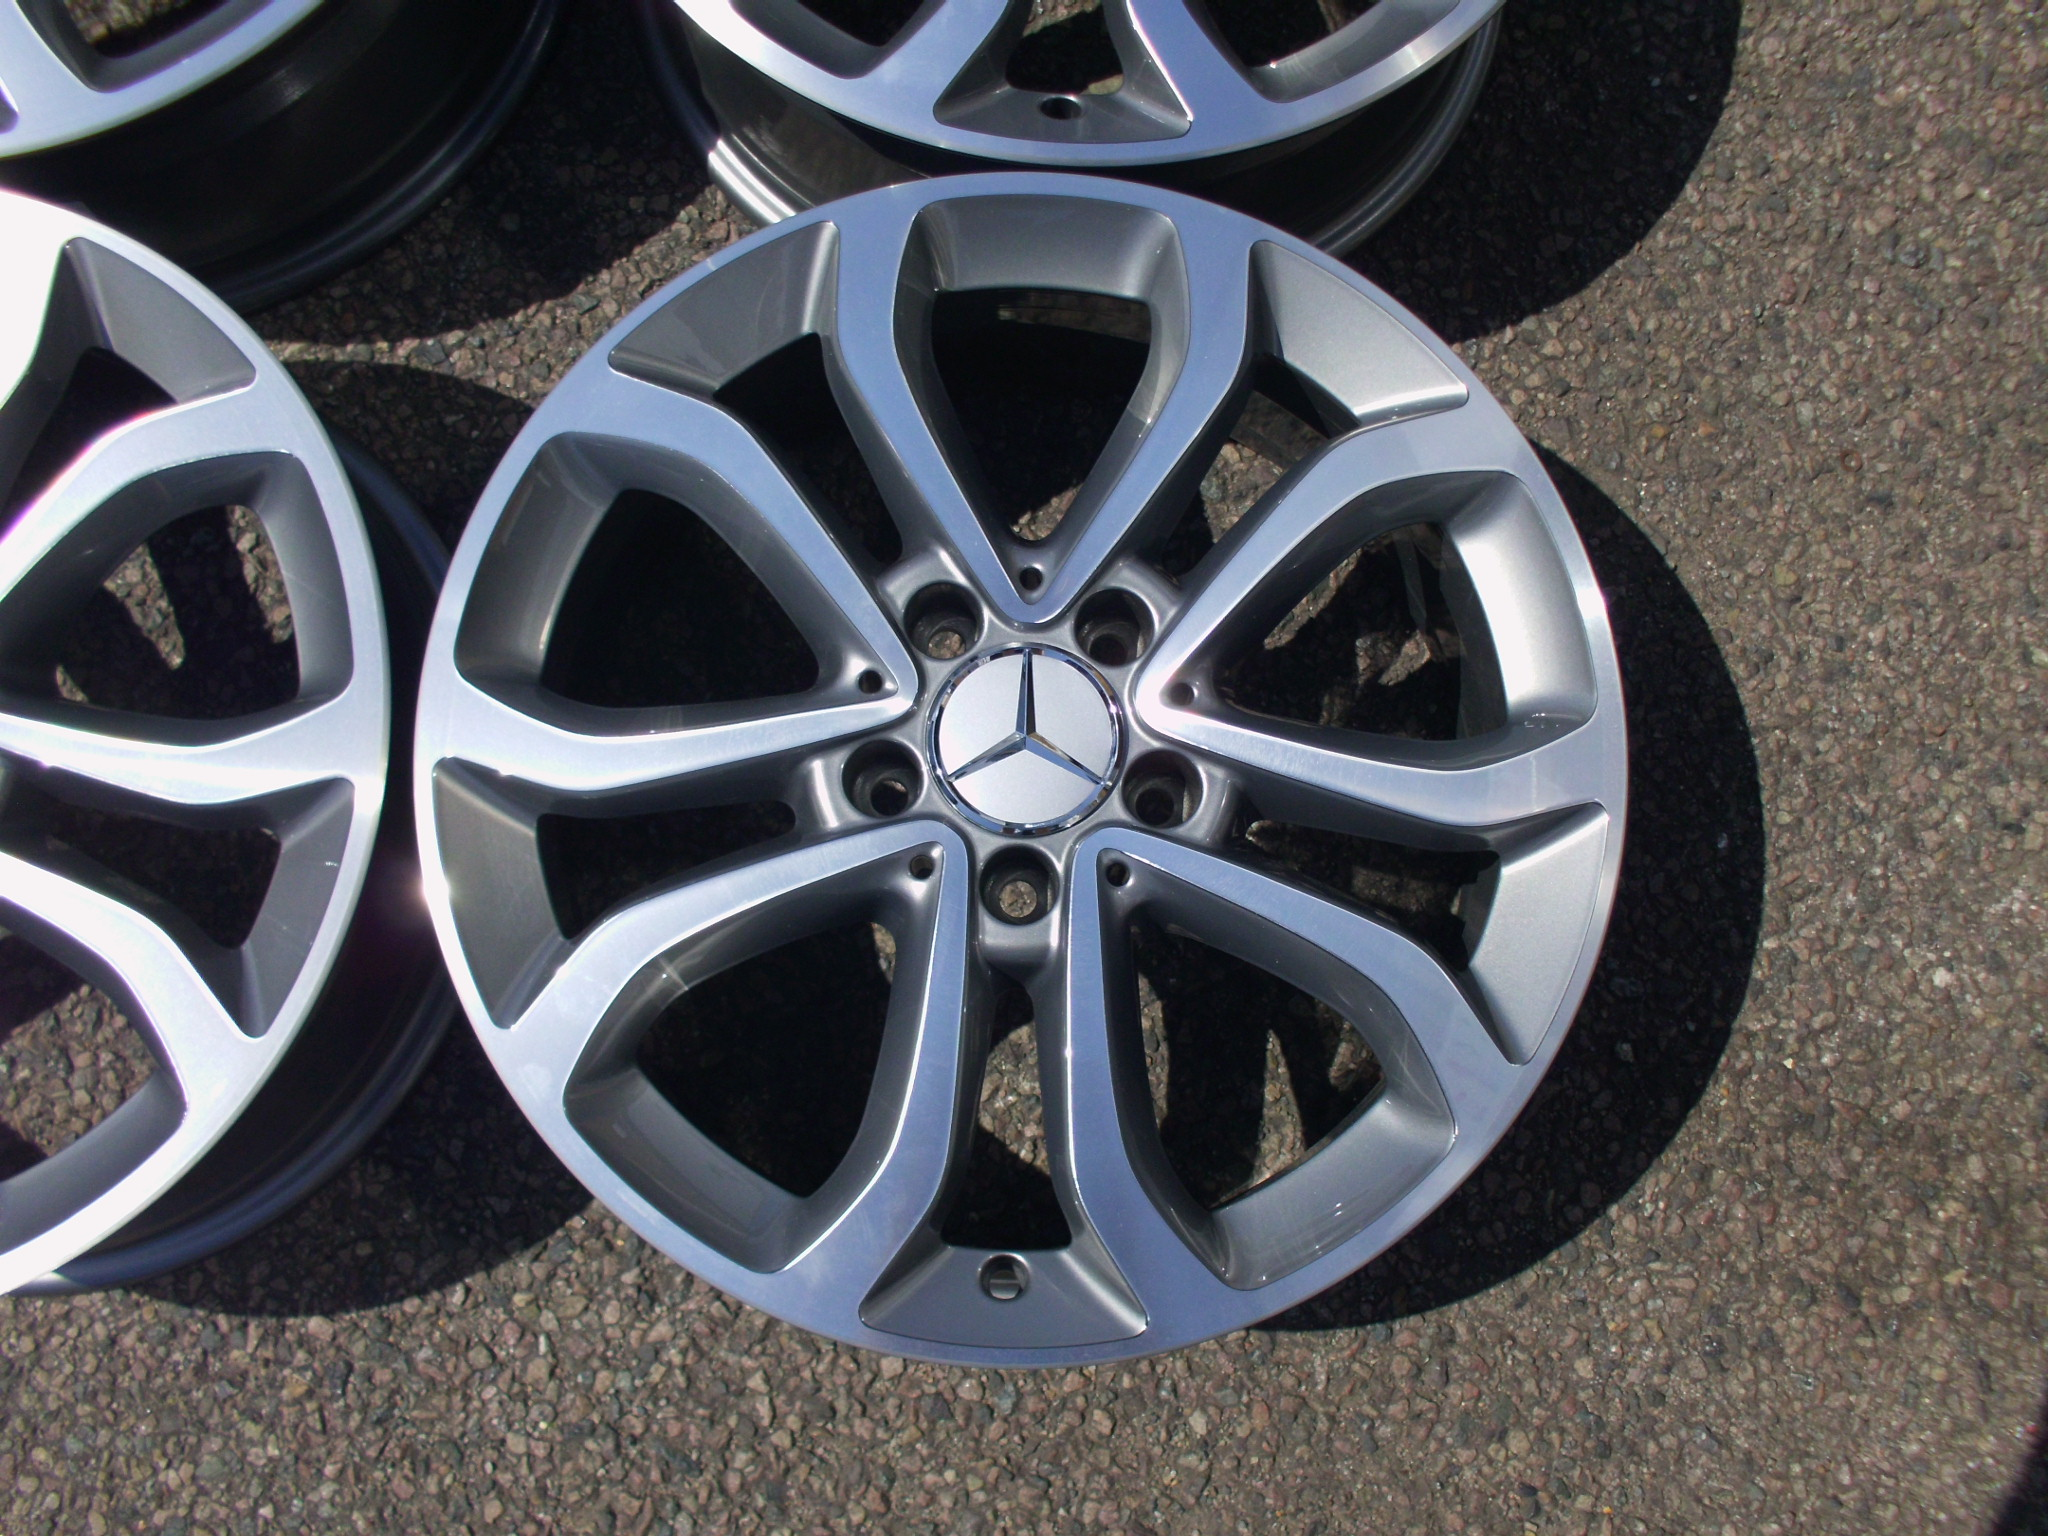 "USED 17"" GENUINE MERCEDES 5 TWIN SPOKE ALLOY WHEELS,FULLY REFURBED , W205 204 C CLASS + FIT A/B CLASS"